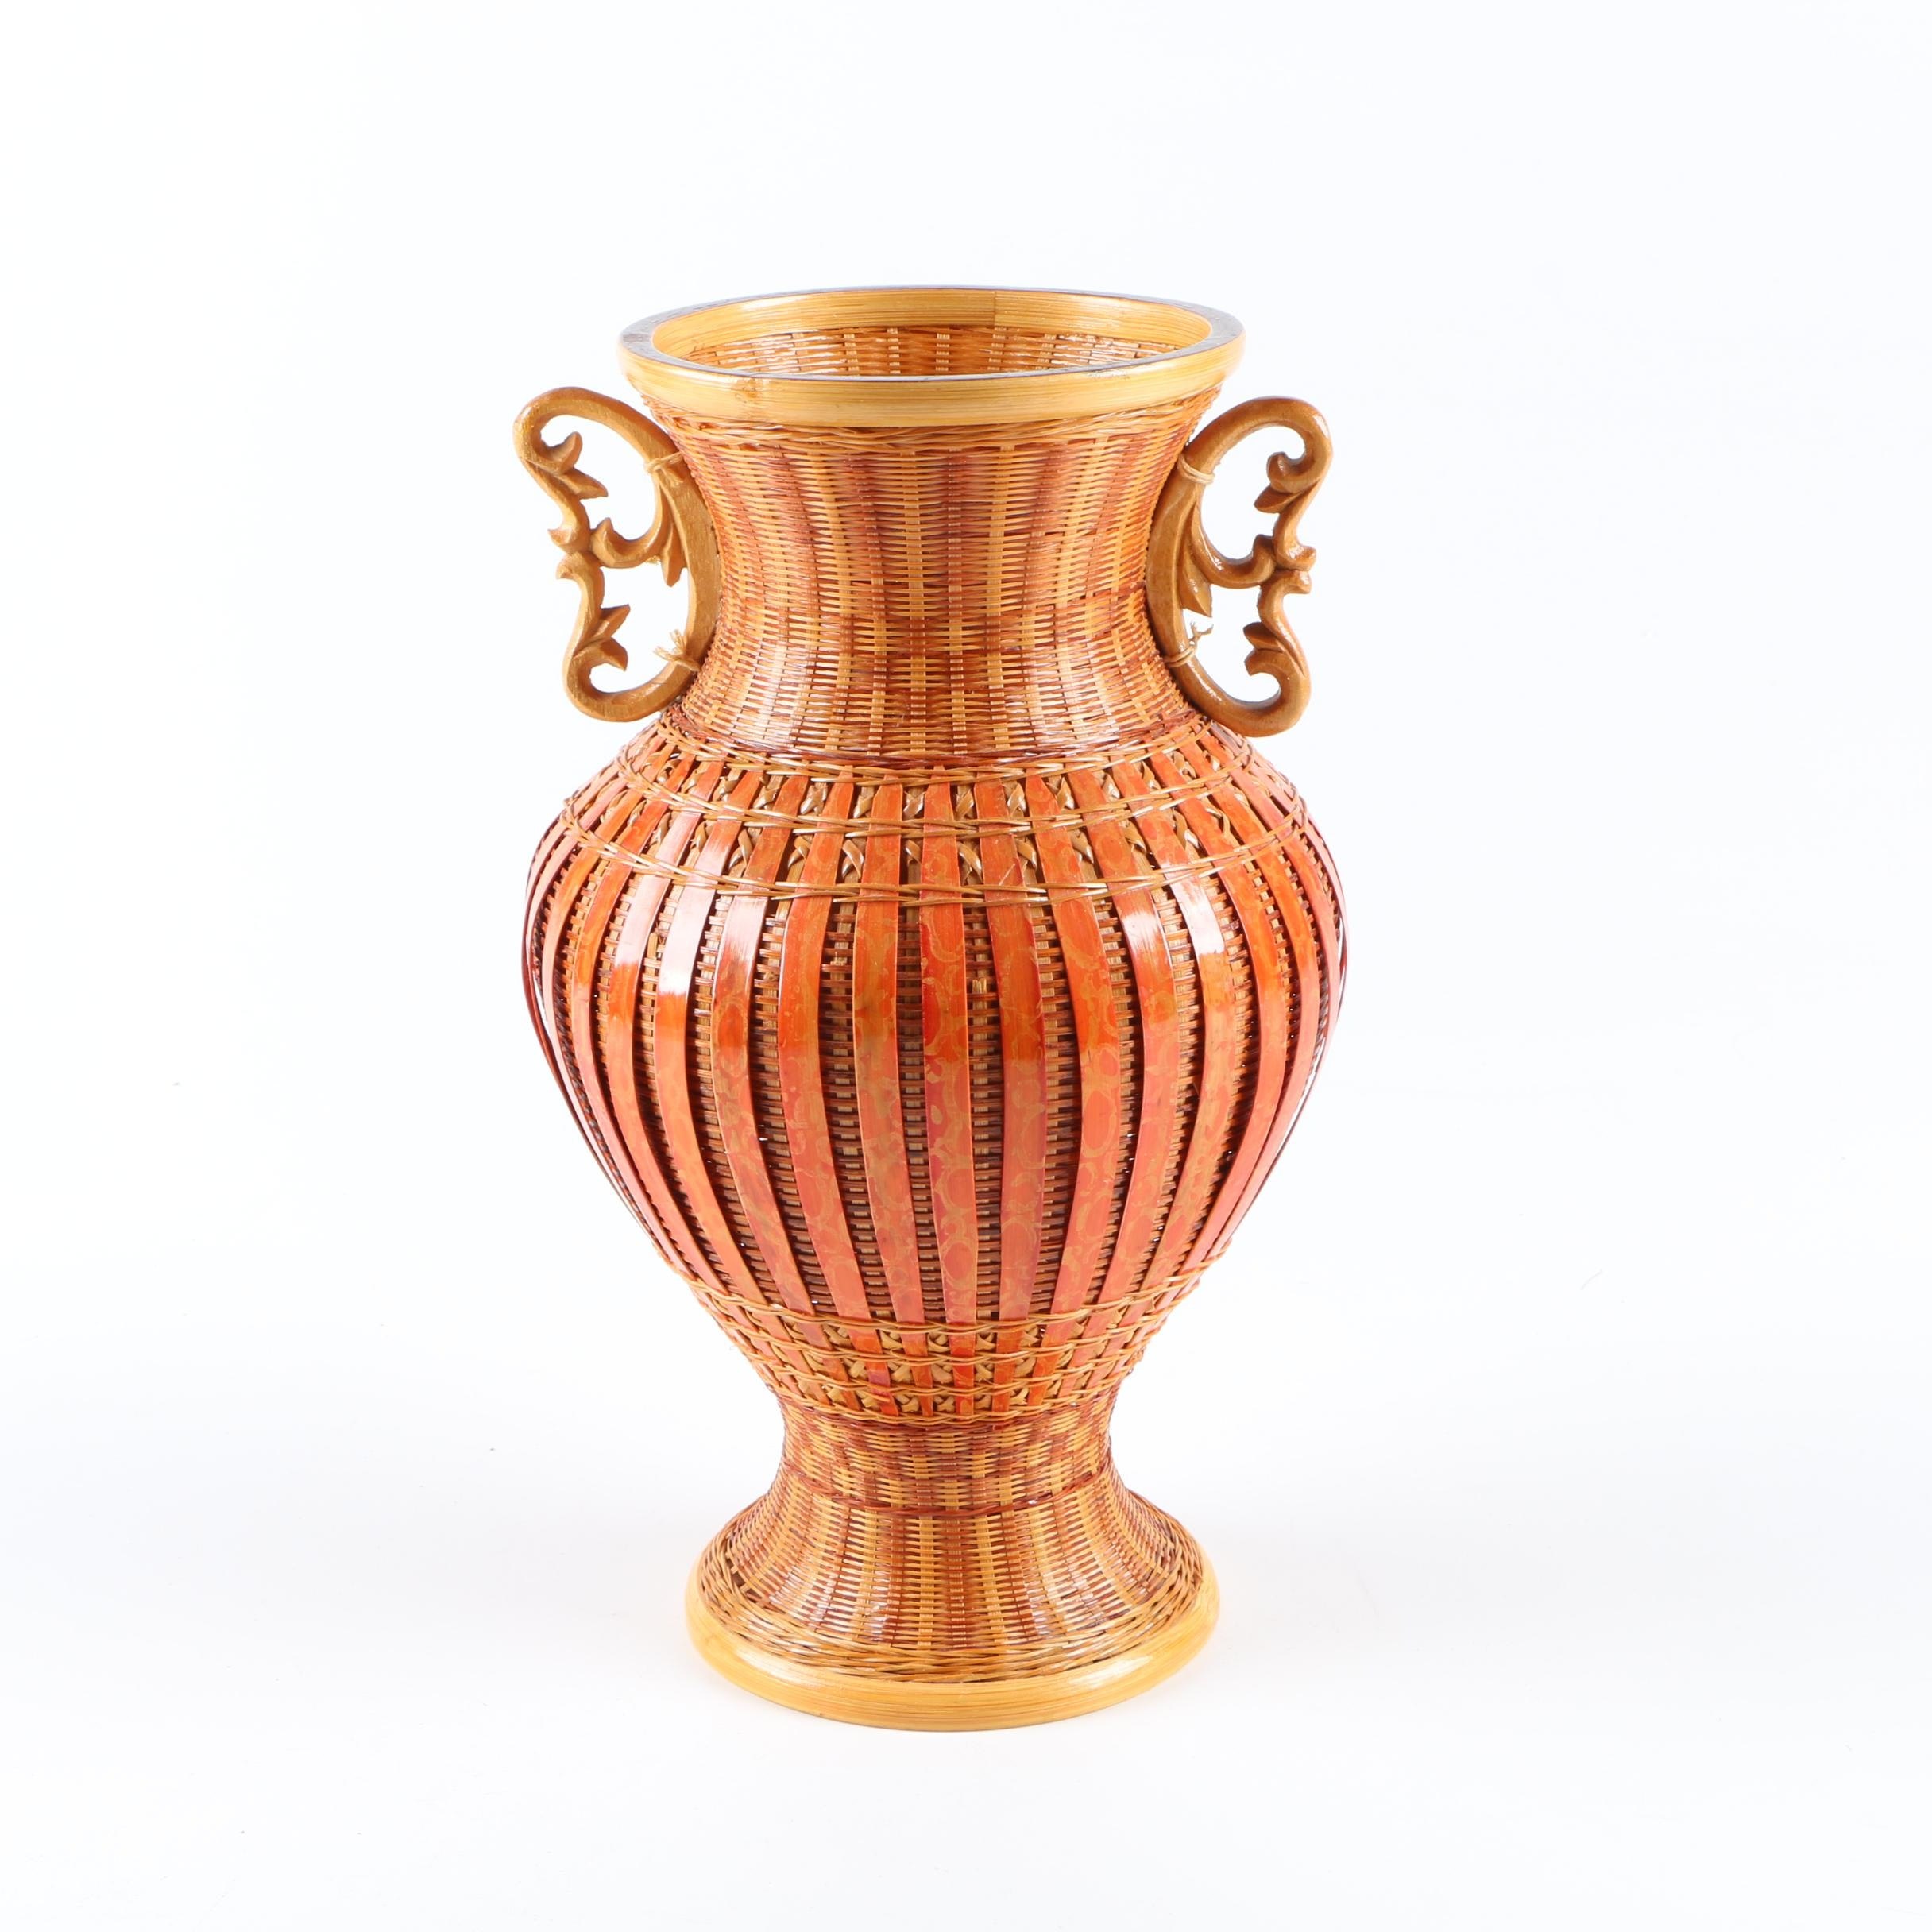 Wicker Vase with Metal Liner